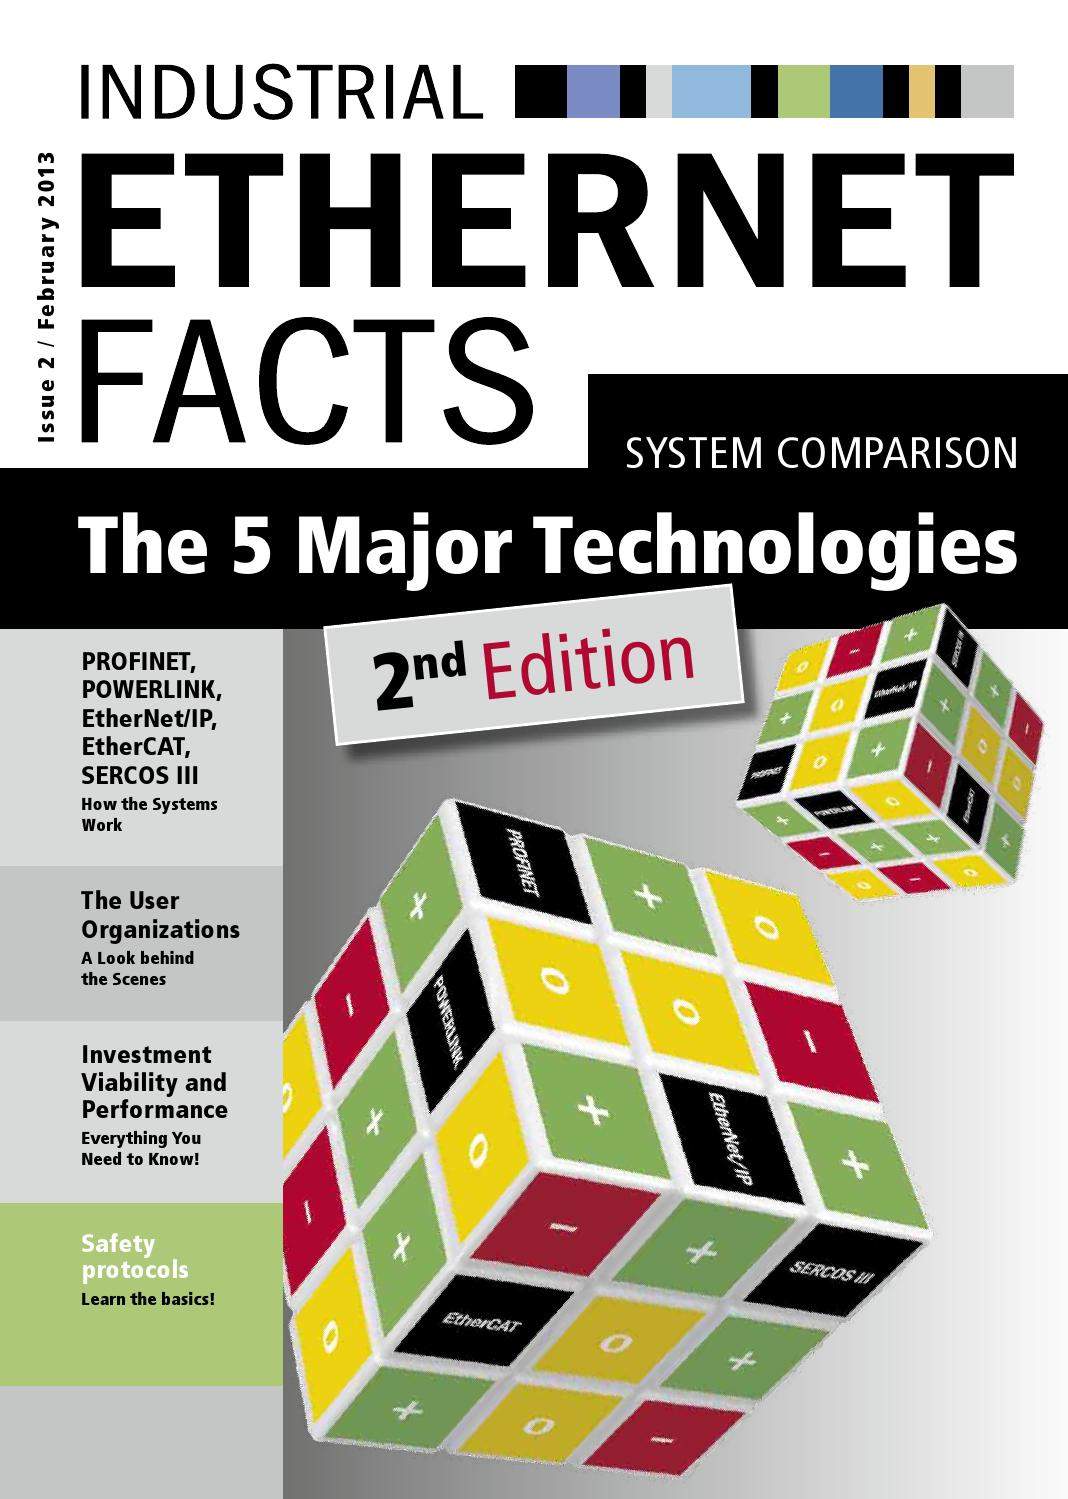 2013 mm e01306 009 industrial ethernet facts 02 13 by